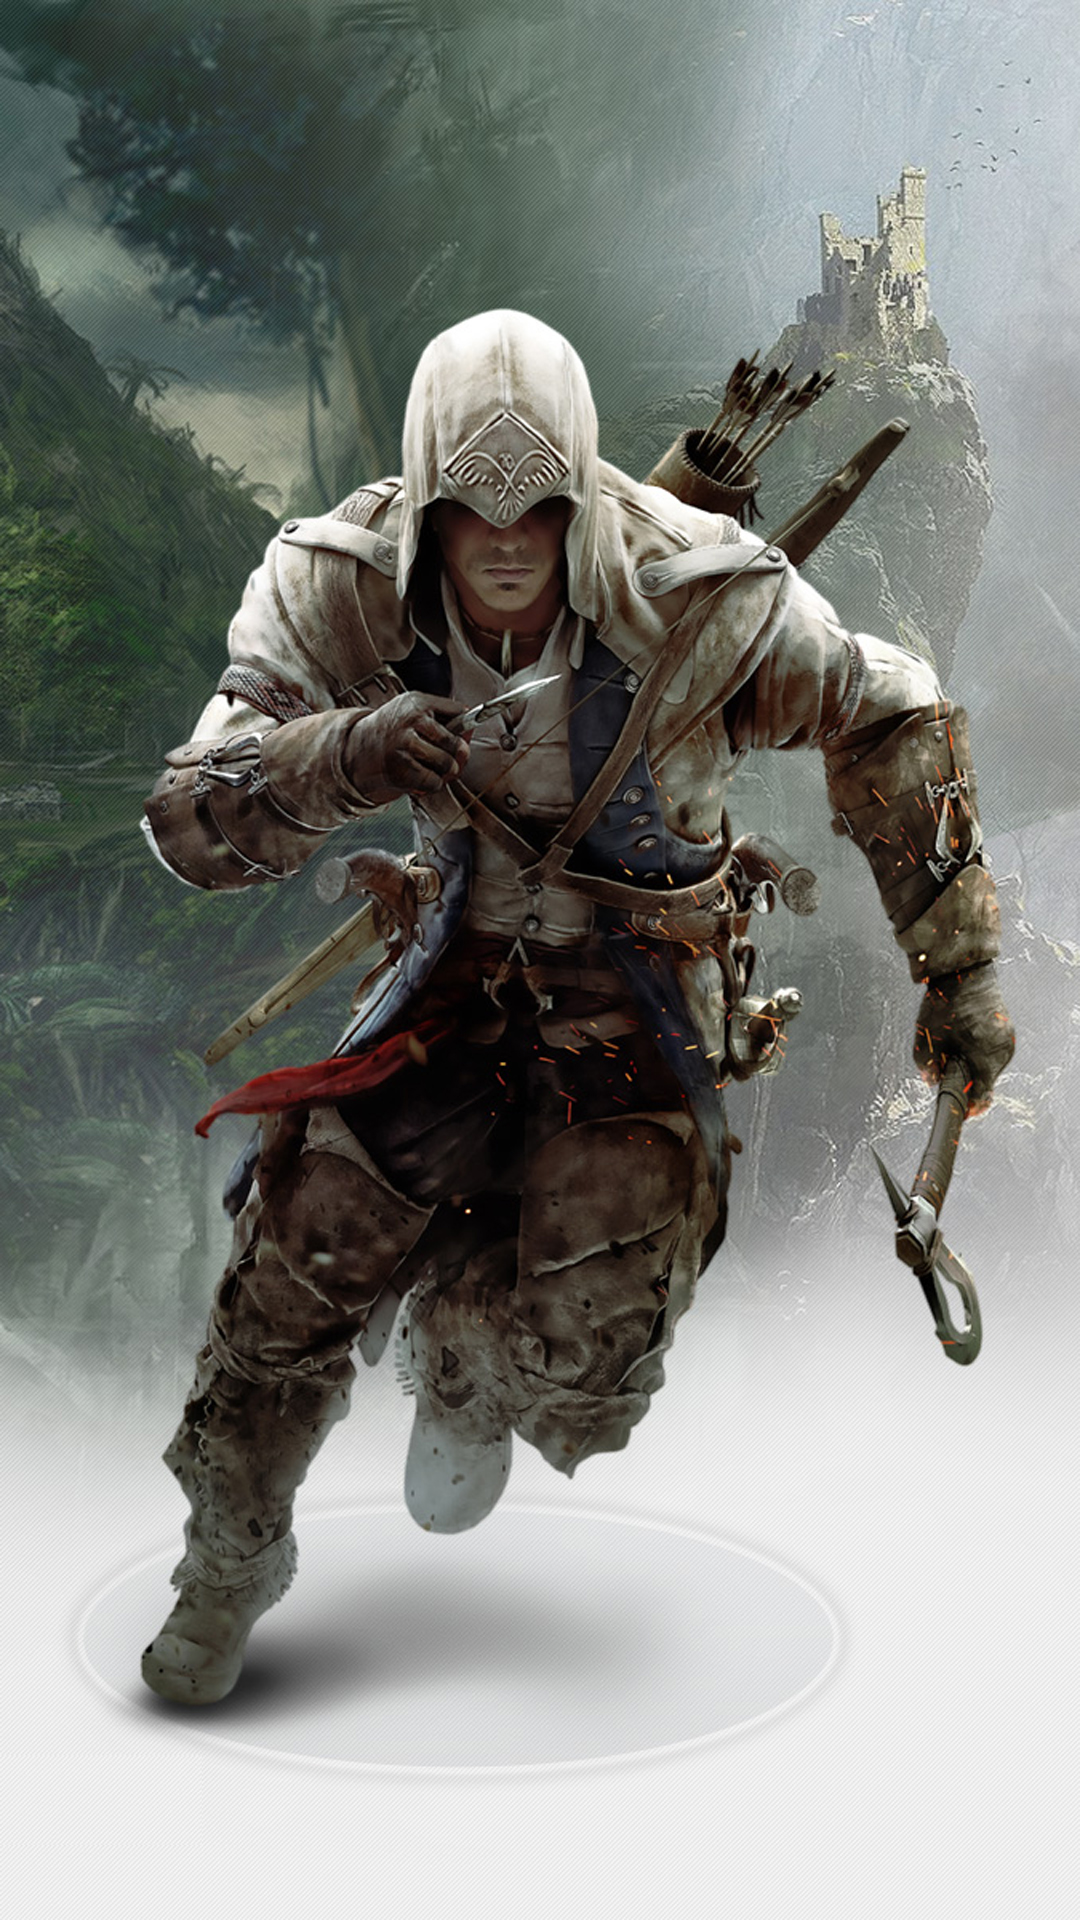 Cool Live Wallpapers For Iphone X Hd Assassin S Creed Wallpaper For Iphone Pixelstalk Net